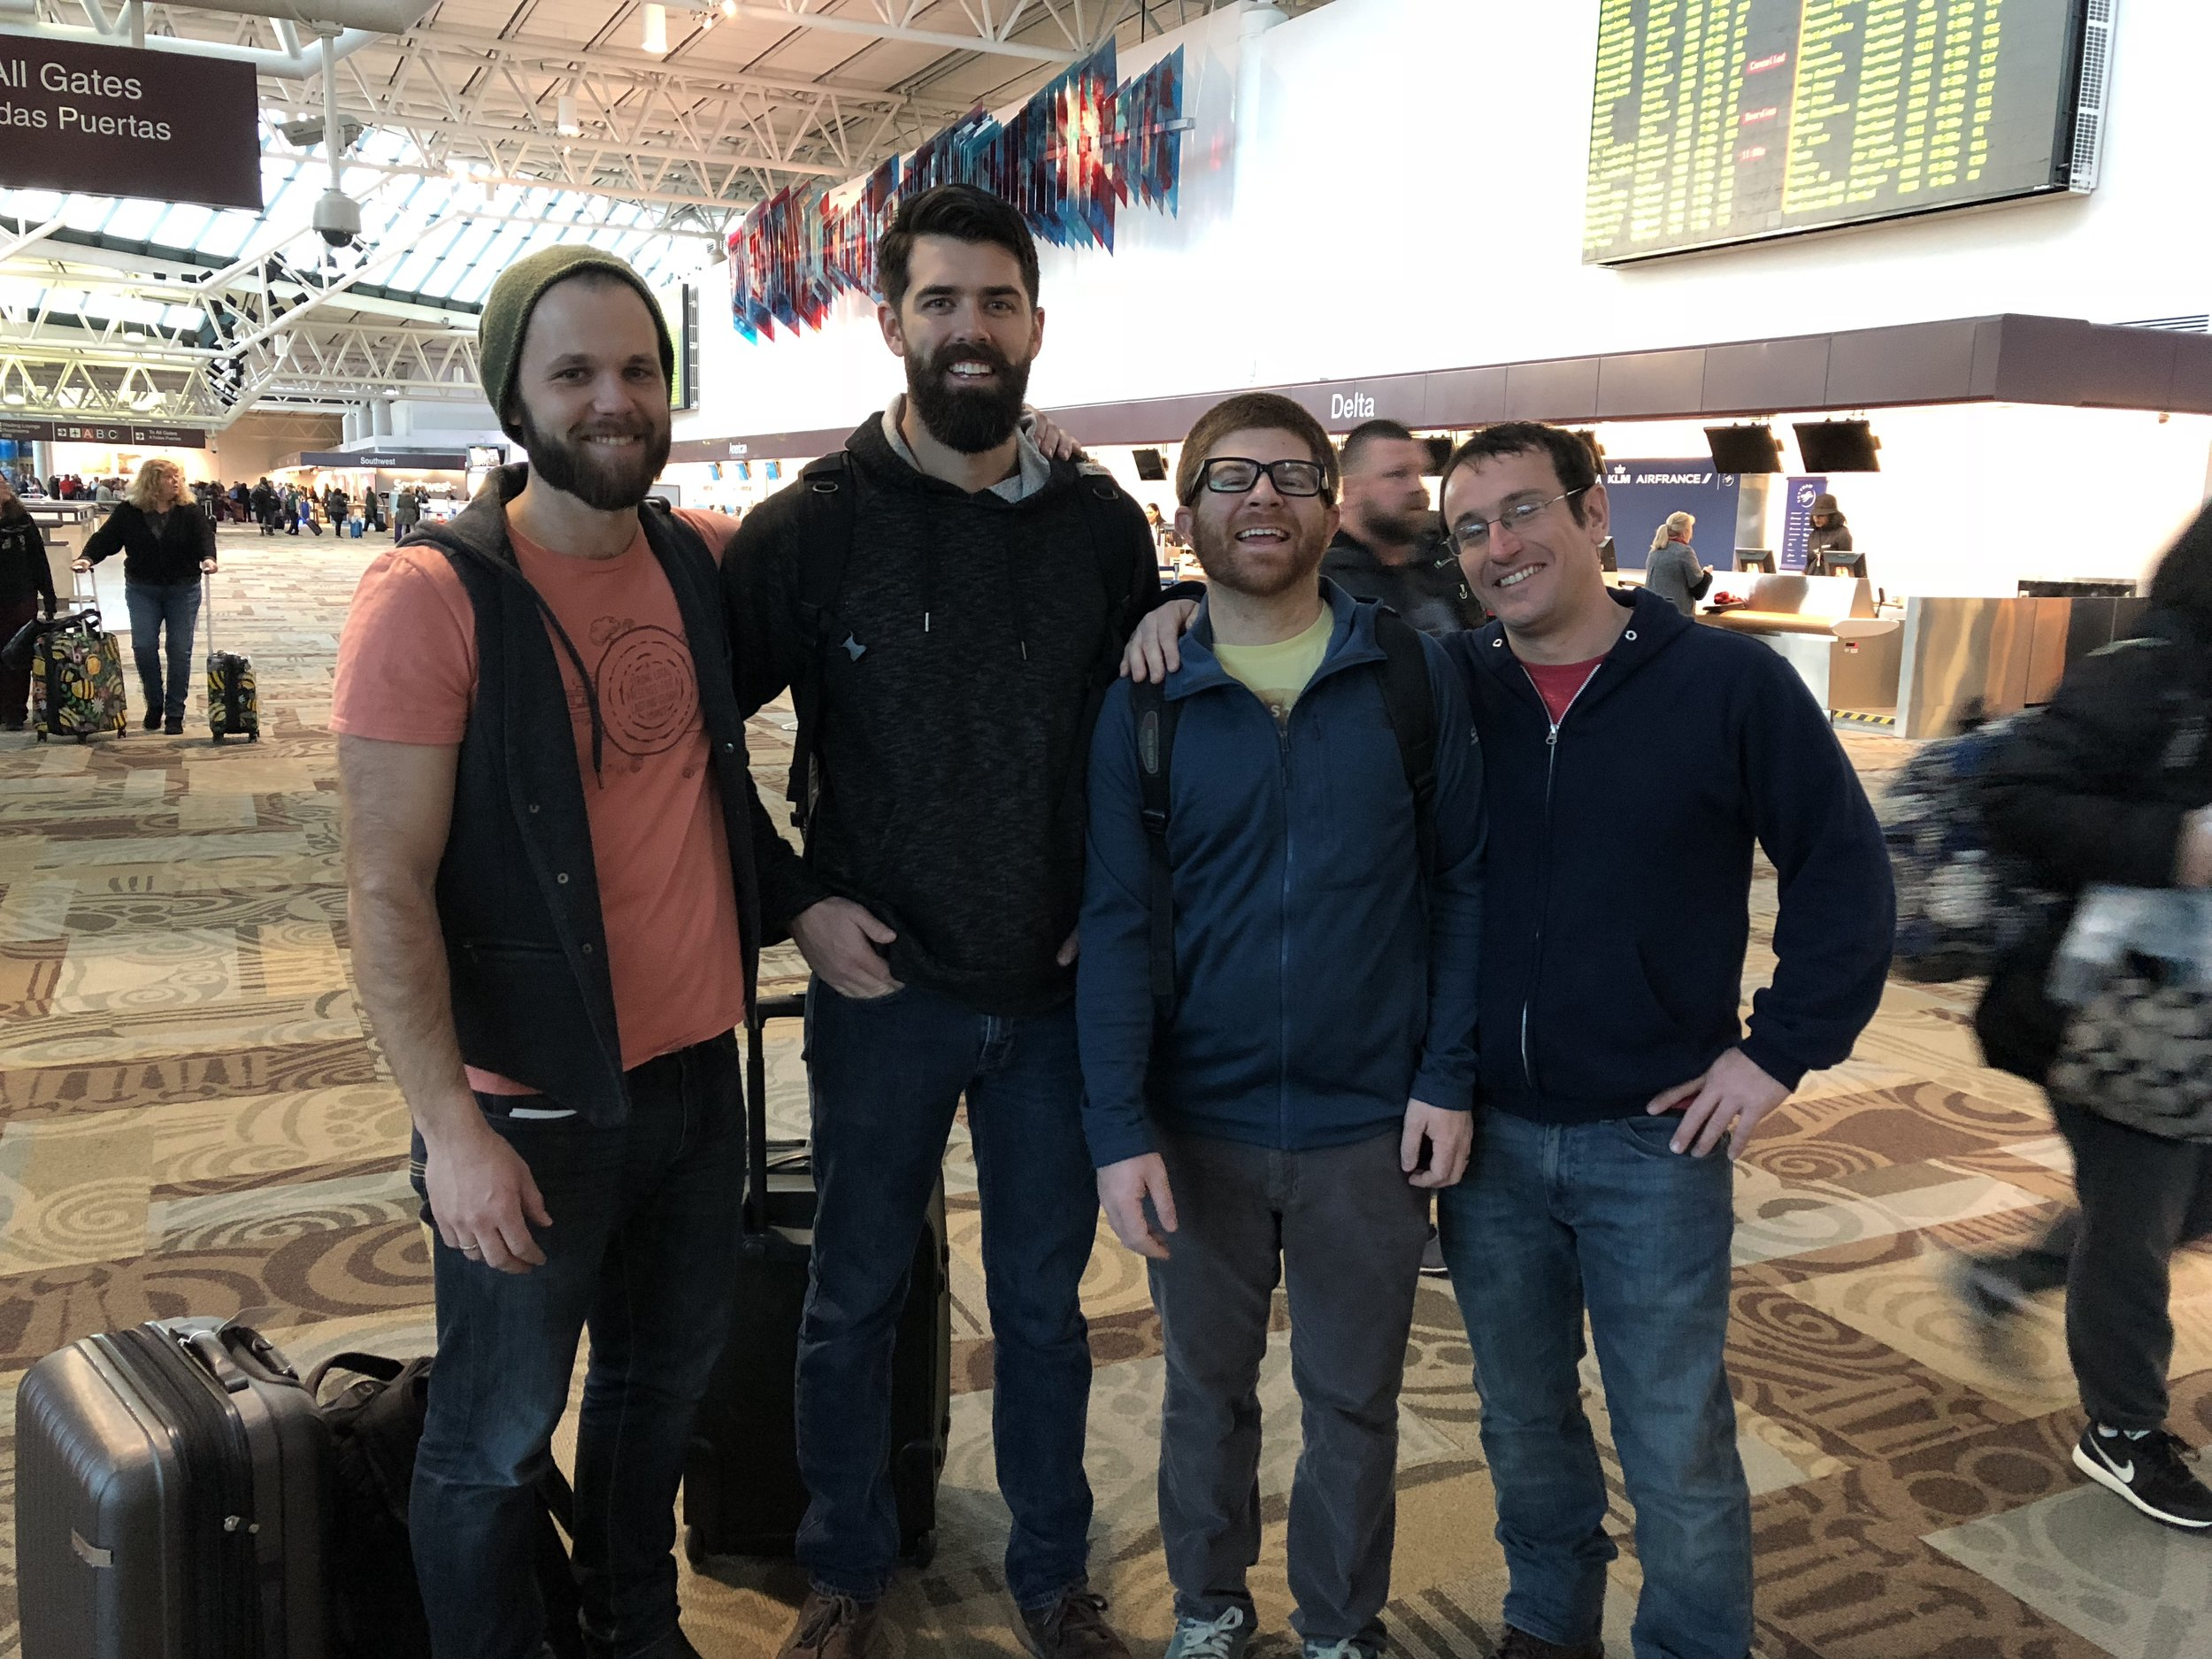 From Left: Geoff Hartnell, manager of Hopewell Farms, Aaron Montgomery, photographer, web designer and agriculture enthusiast, Mitch Buchanan, our entrepreneurial expert of the trip and Brandon Galford, Bible professor from the Institute for G.O.D.,all members of G.O.D. Int'l.